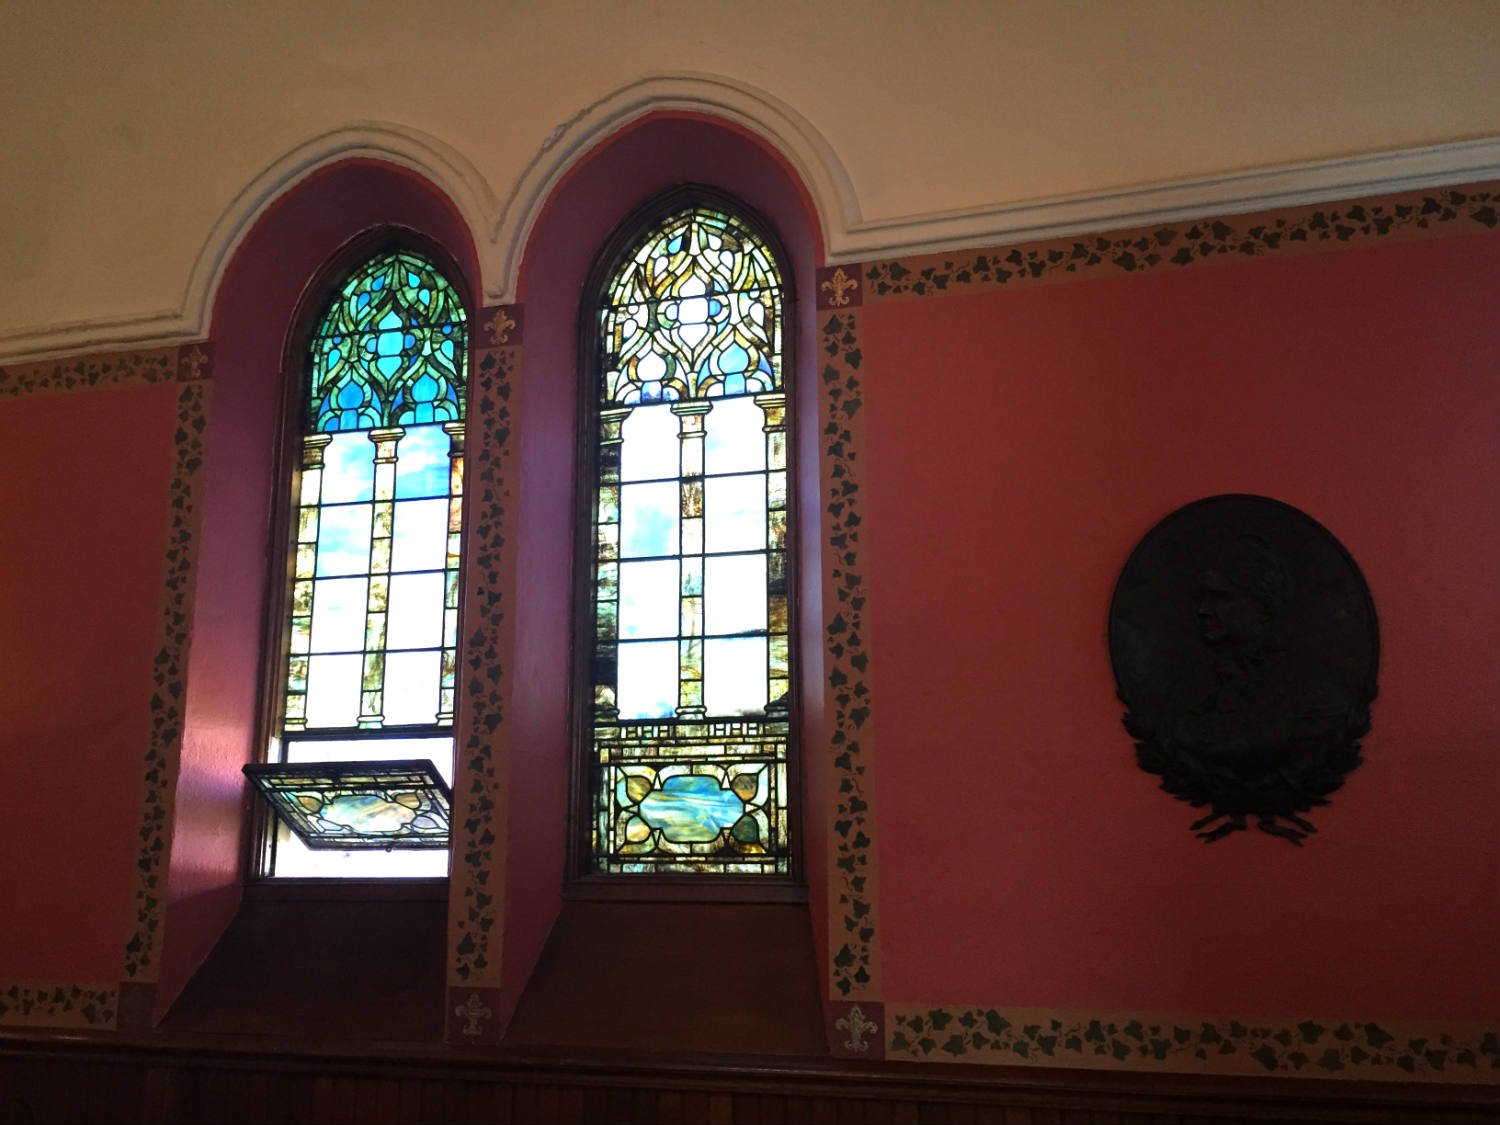 Tiffany Windows in the Pullman Memorial Universalist Church in Albion